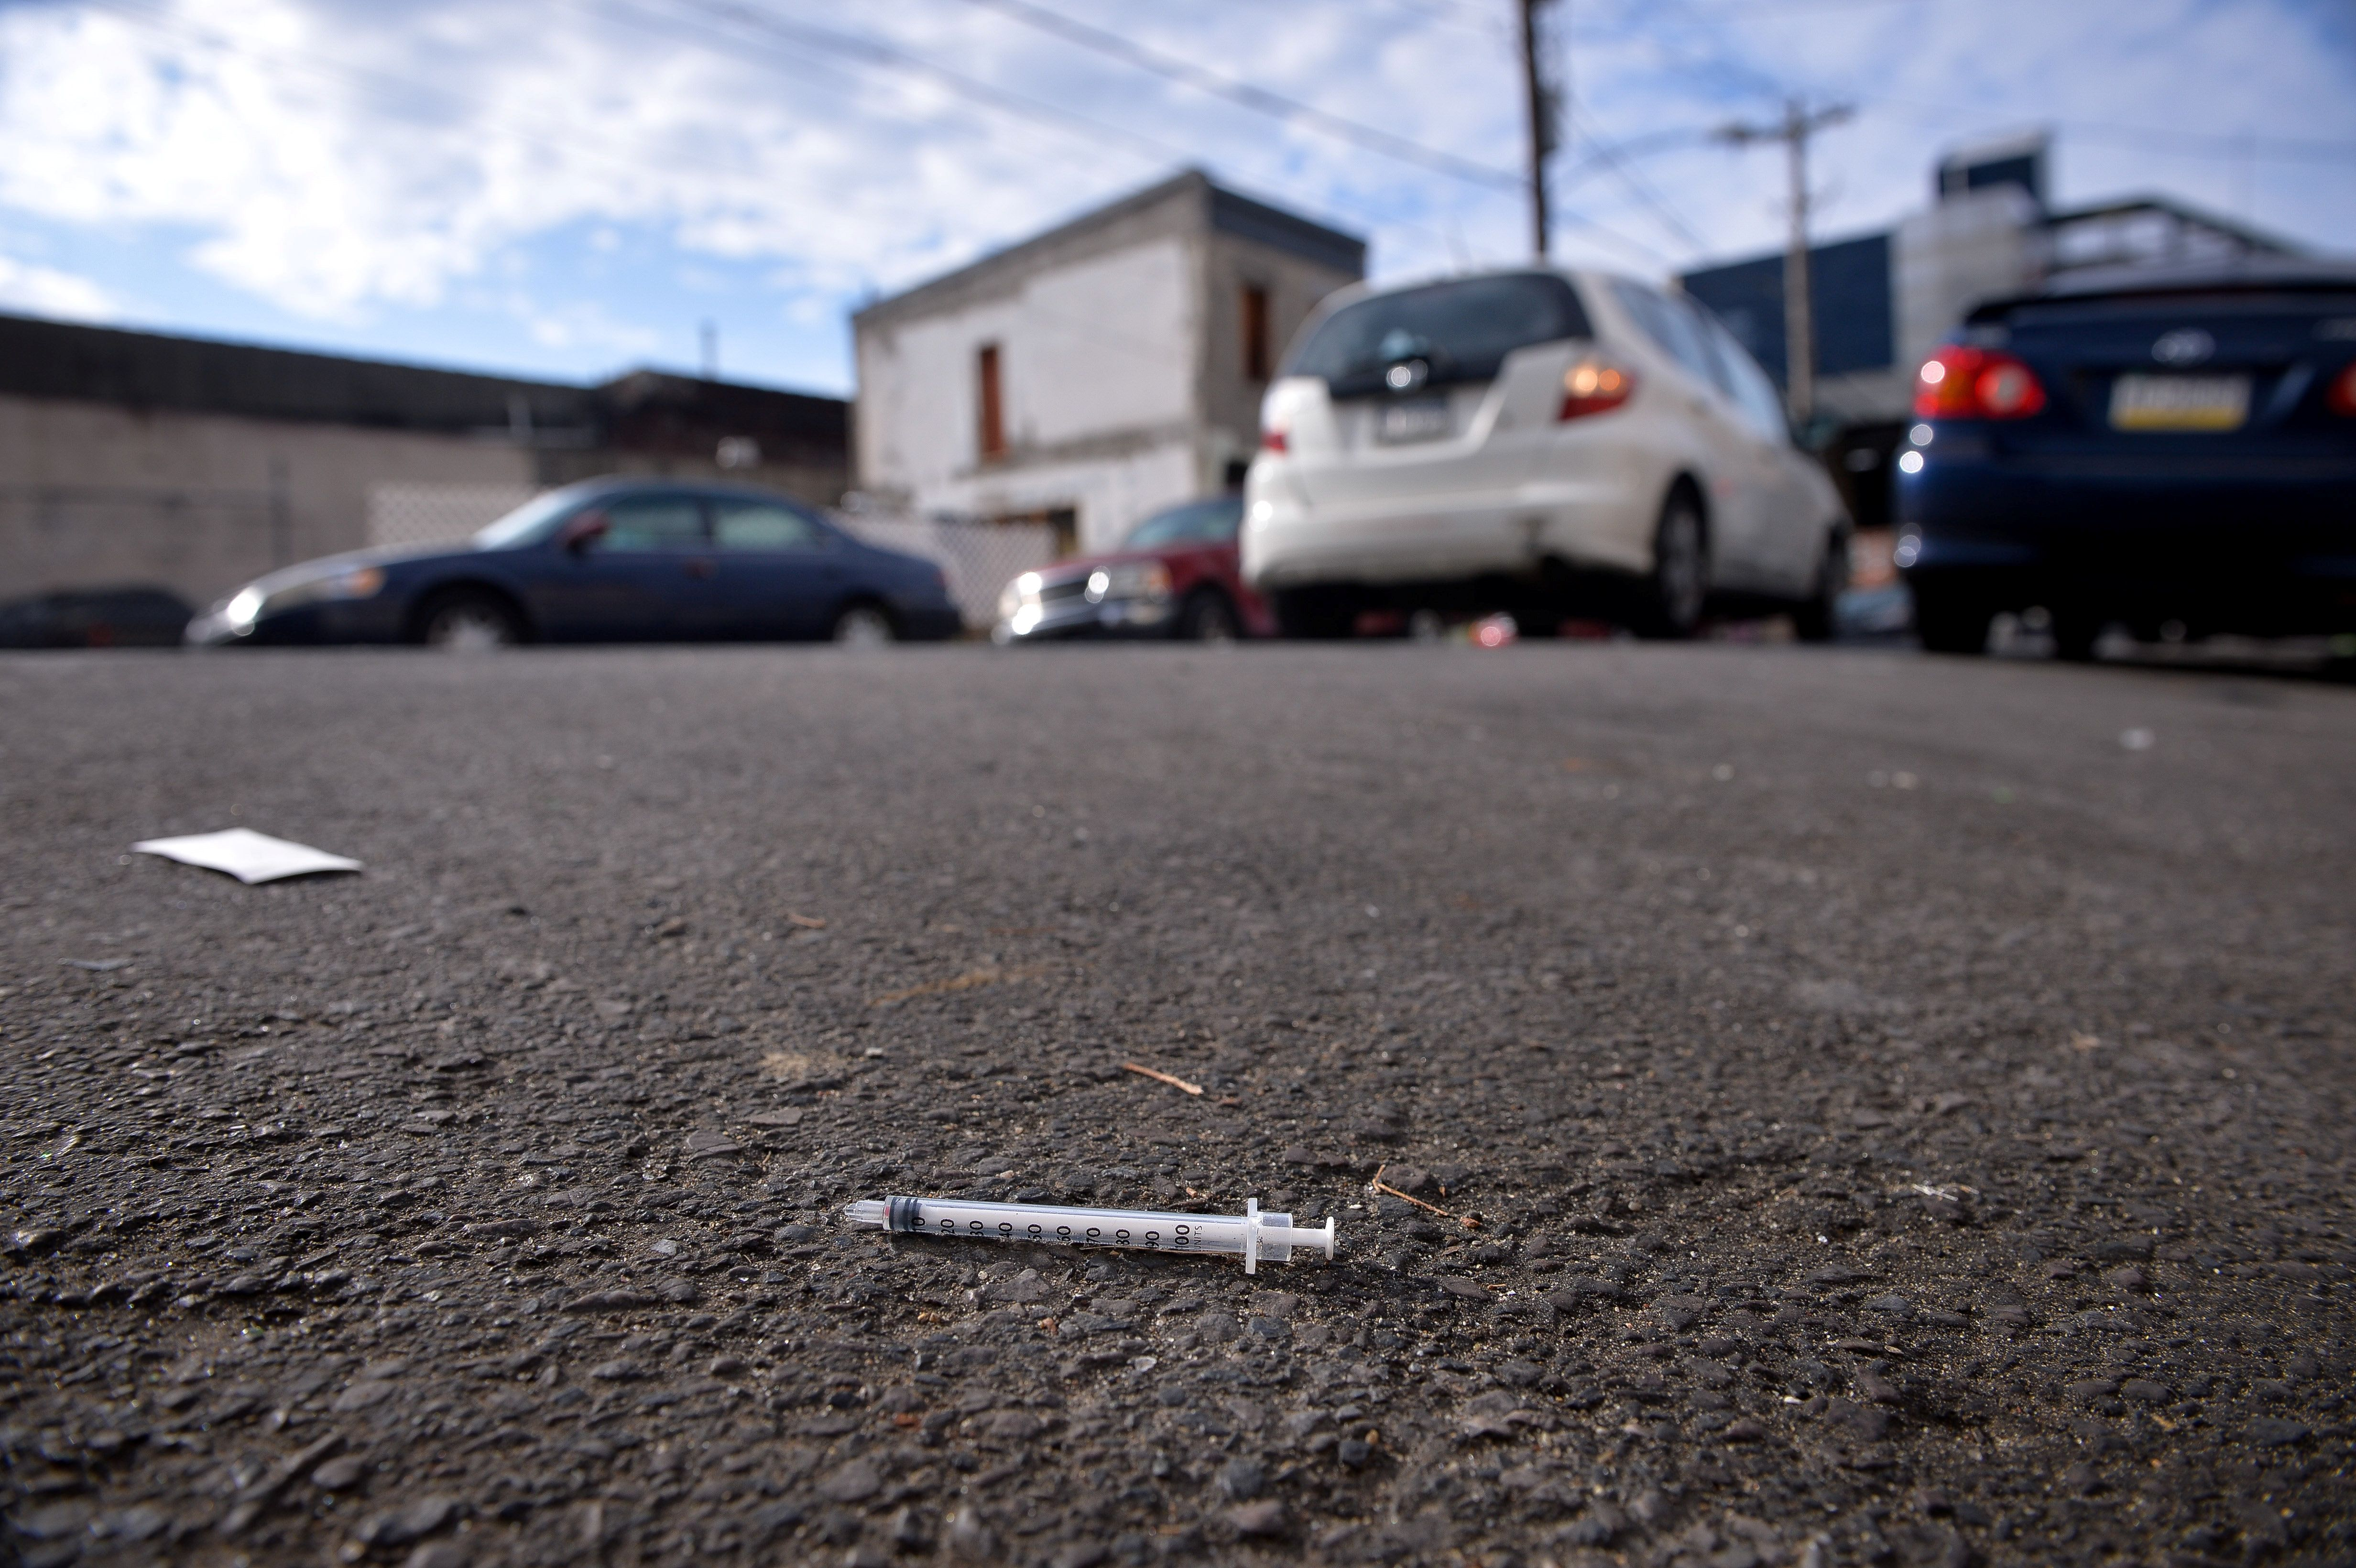 A needle used for shooting heroin and other opioids lies in the street in the Kensington section of Philadelphia, Pennsylvania, U.S., October 26, 2017. REUTERS/Charles Mostoller